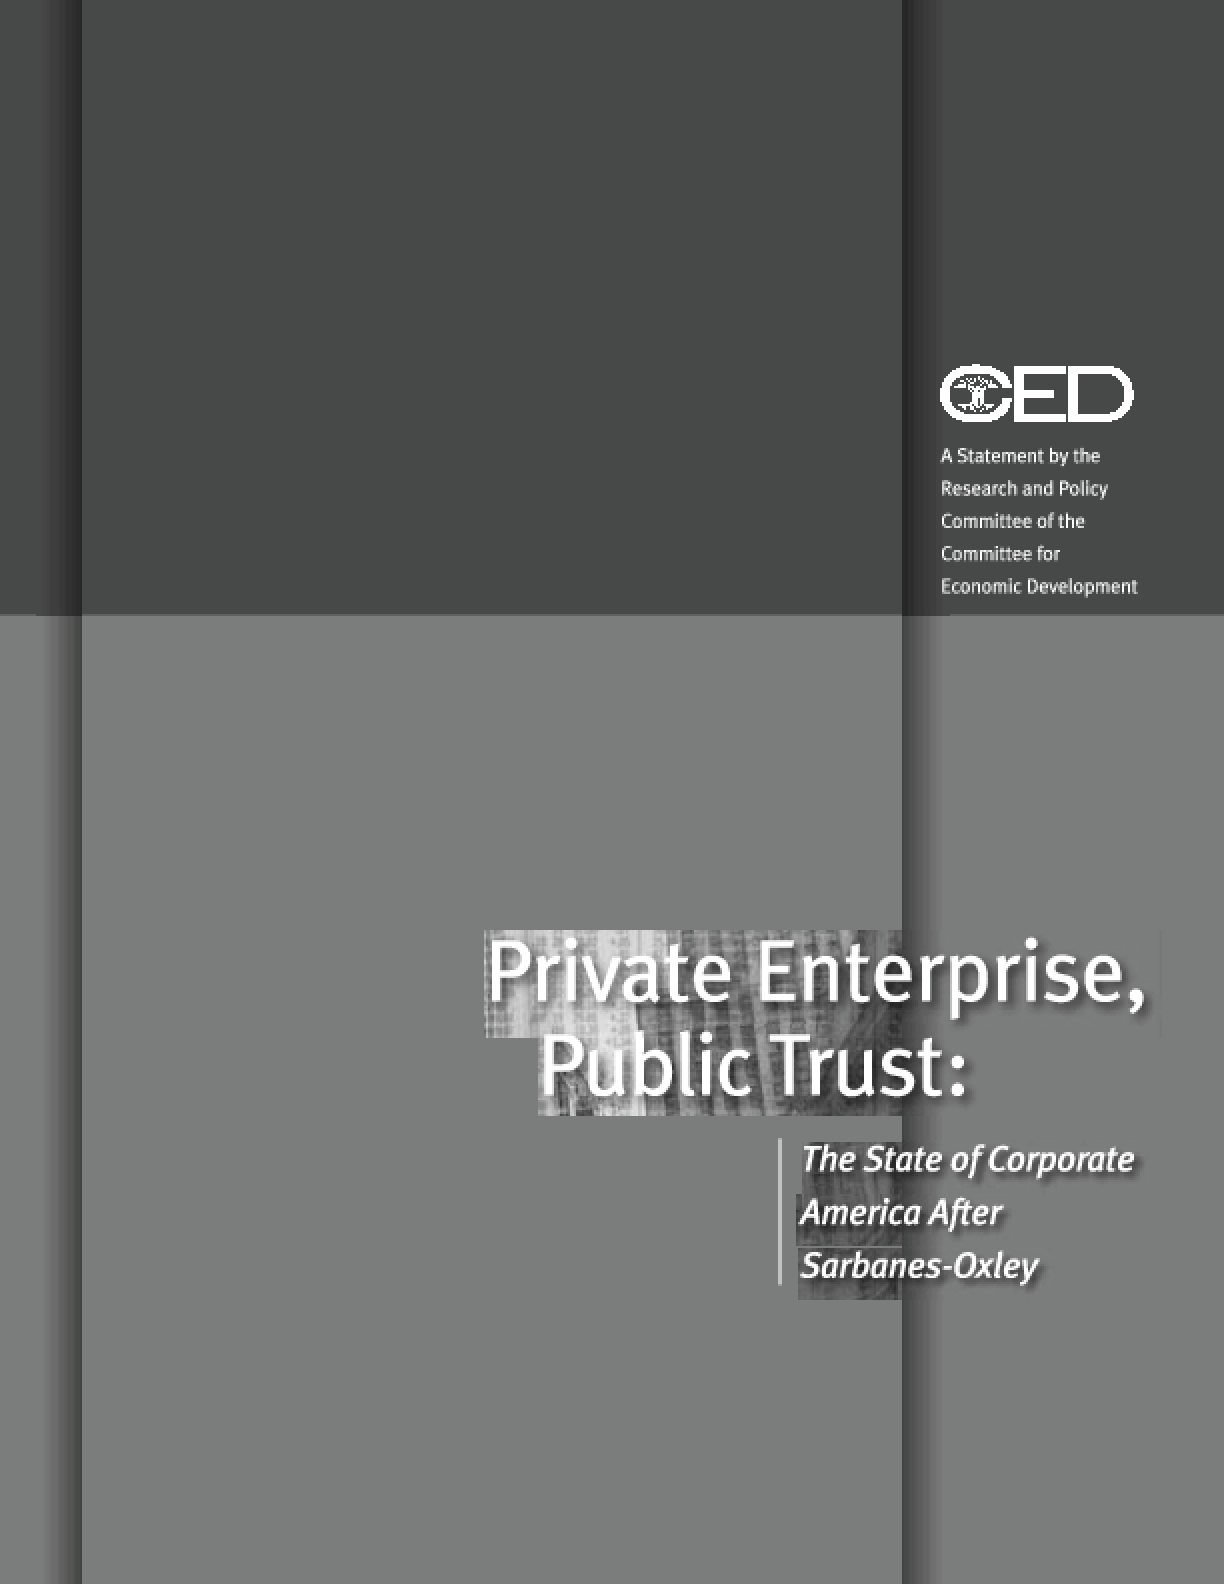 Private Enterprise, Public Trust: The State of Corporate America After Sarbanes-Oxley